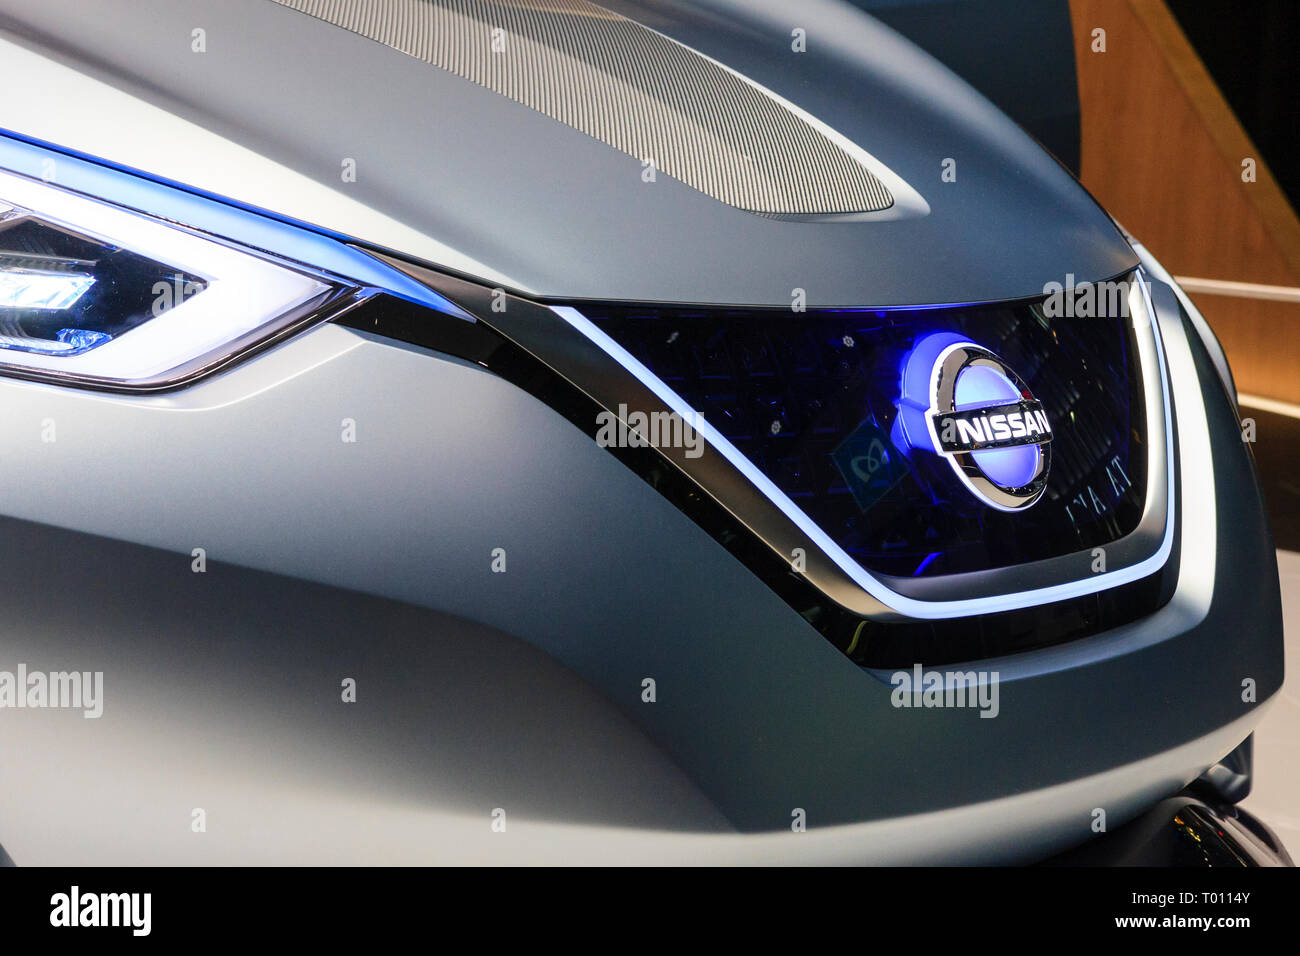 Nissan flagship showroom on the Ginza in Tokyo. Display of the concept car, the electric Nissan IDS, close of the front showing logo on bonnet, hood. - Stock Image